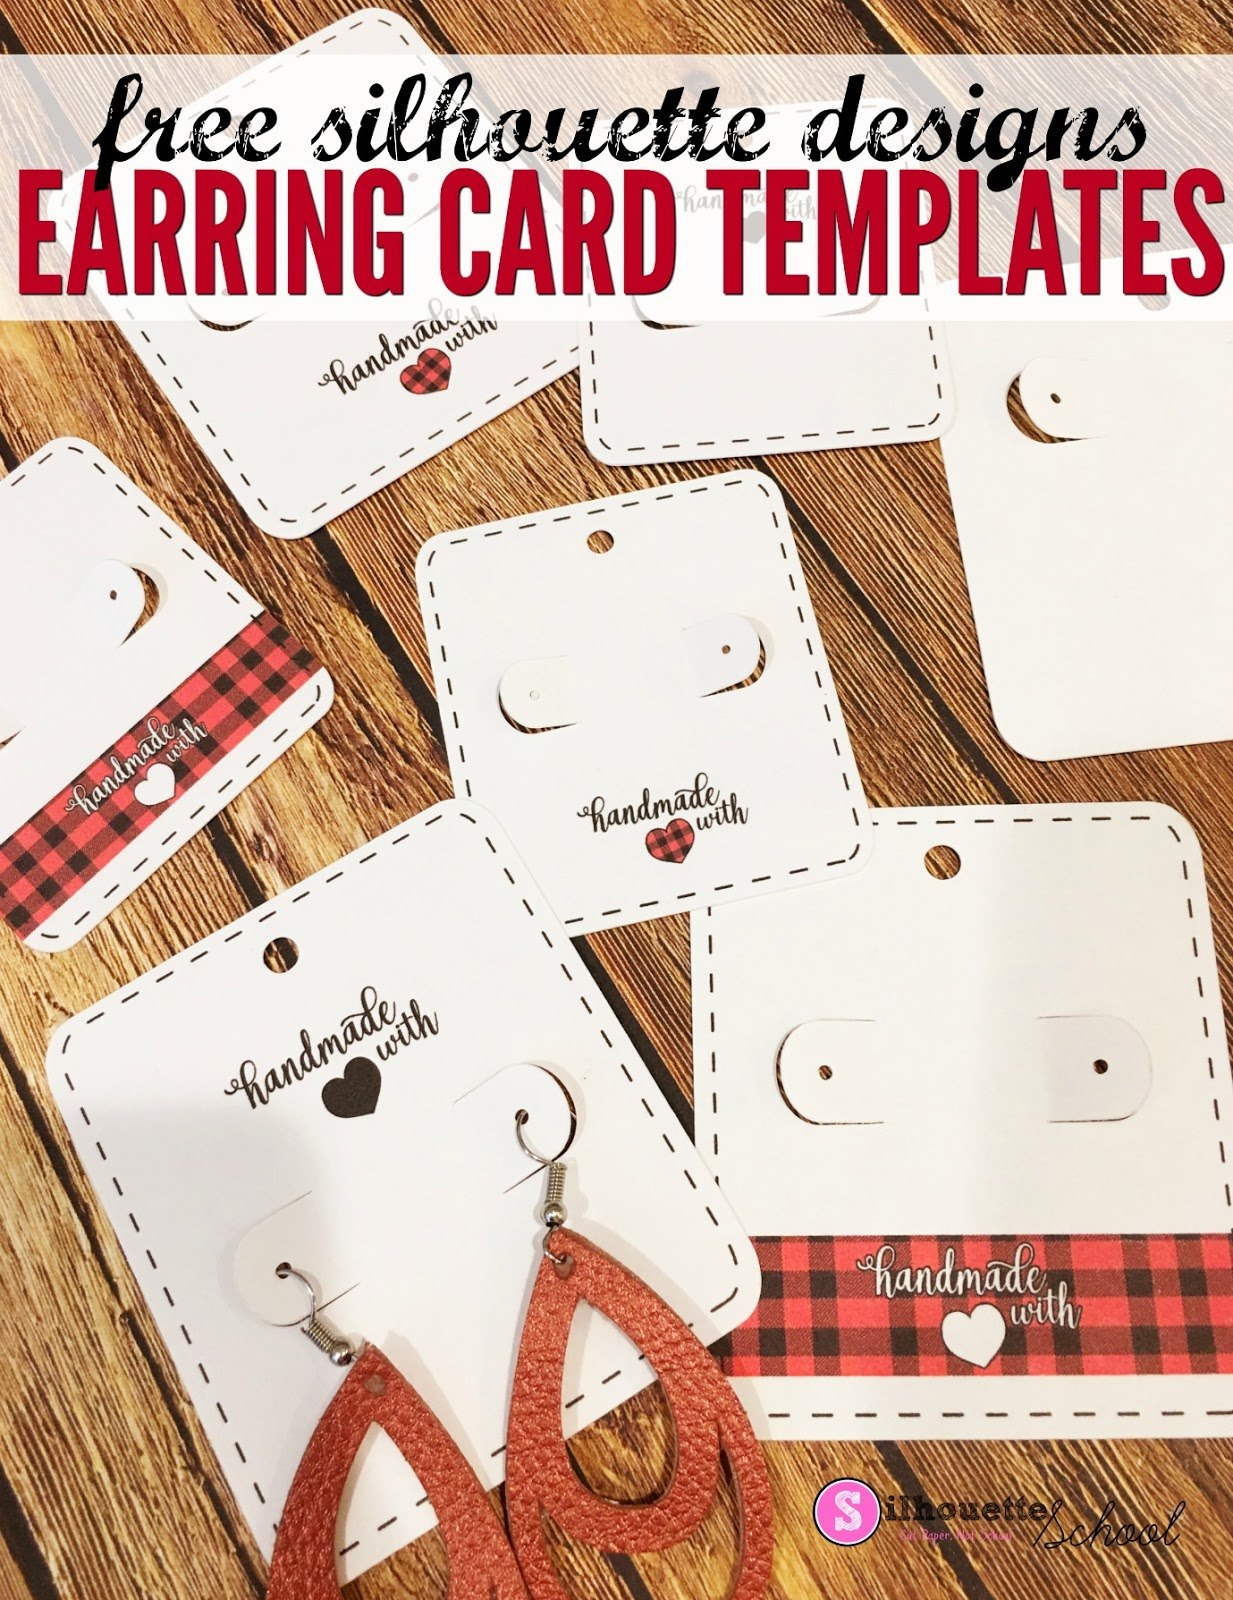 Free Silhouette Earring Card Templates Set Of   Silhouette School Throughout Free Svg Card Templates